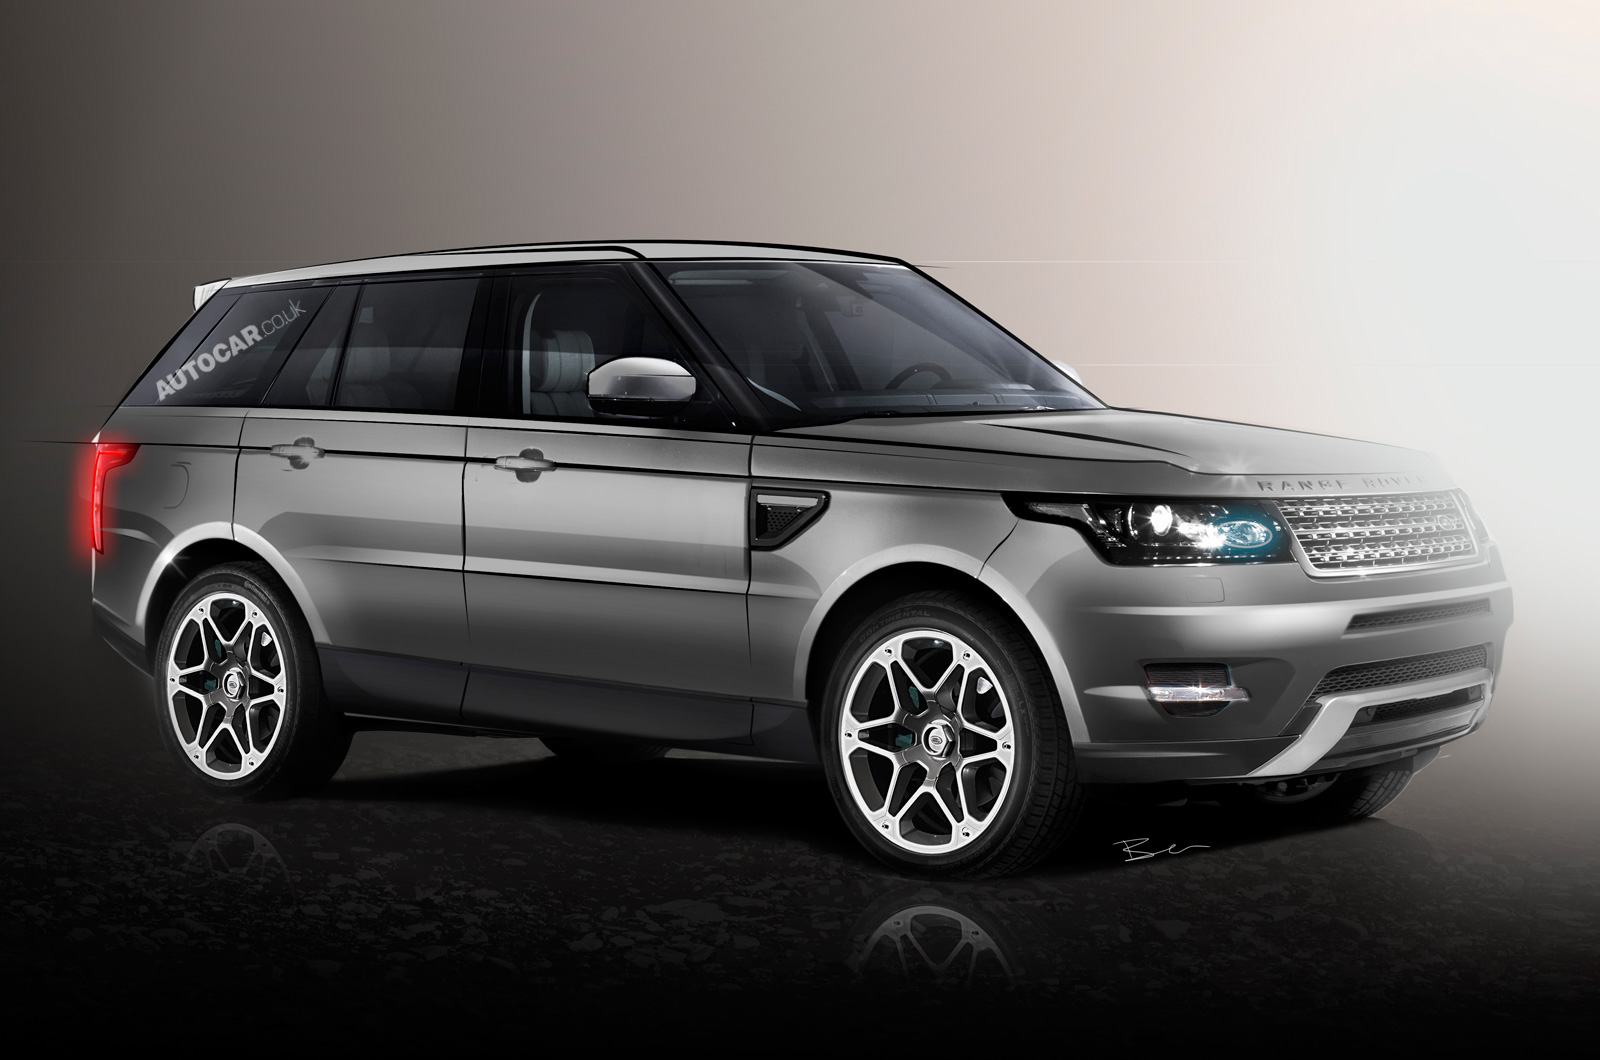 Land rover is putting the final touches to the new range rover sport